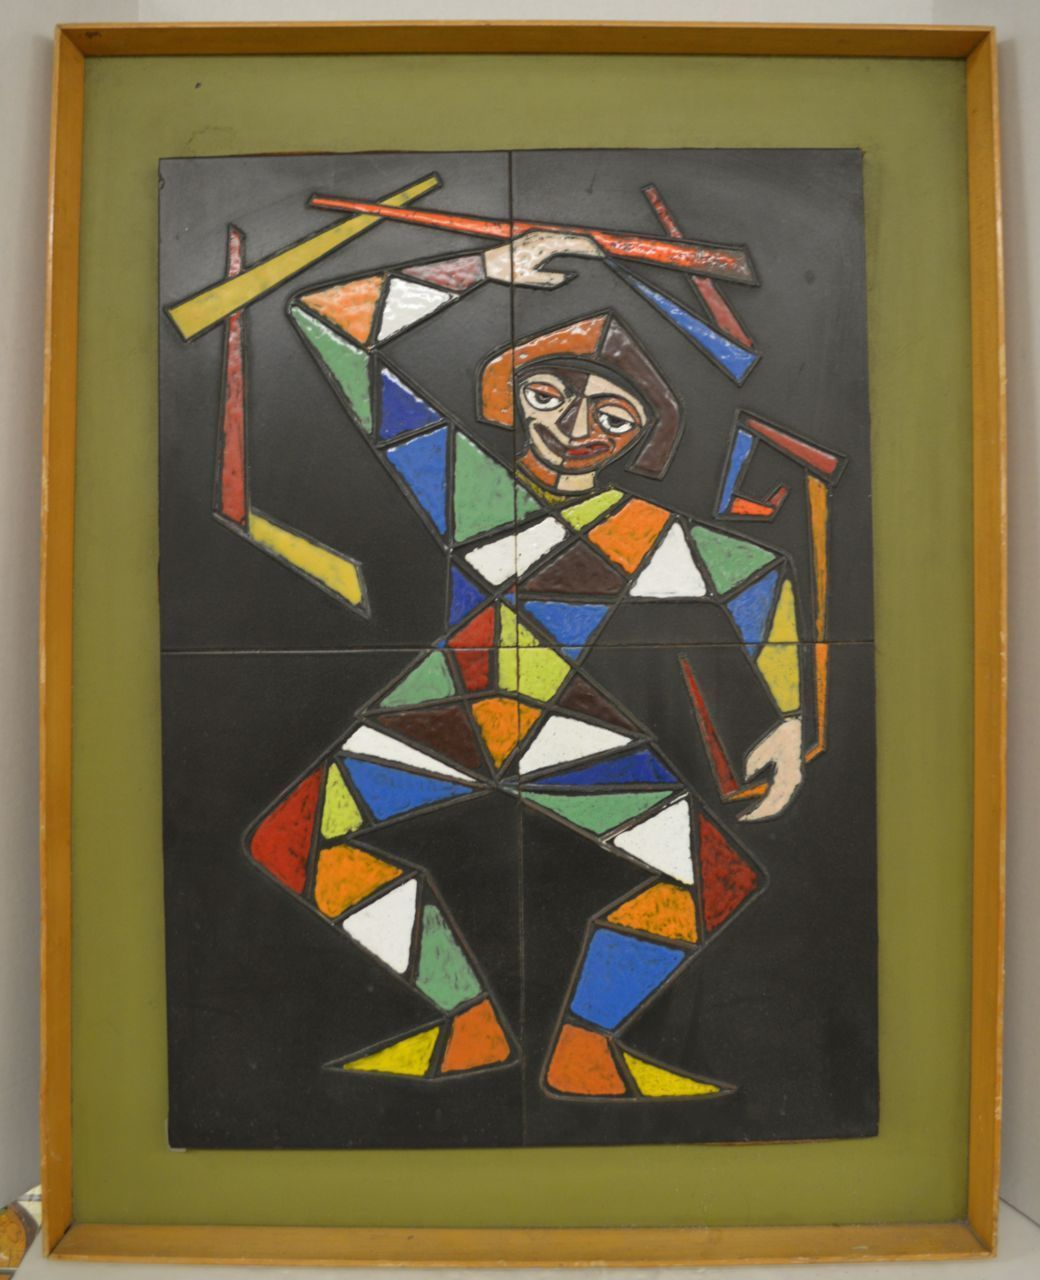 Framed mid century ceramic tiles clown or harlequin in enamel framed mid century ceramic tiles clown or harlequin in enamel ebay dailygadgetfo Image collections